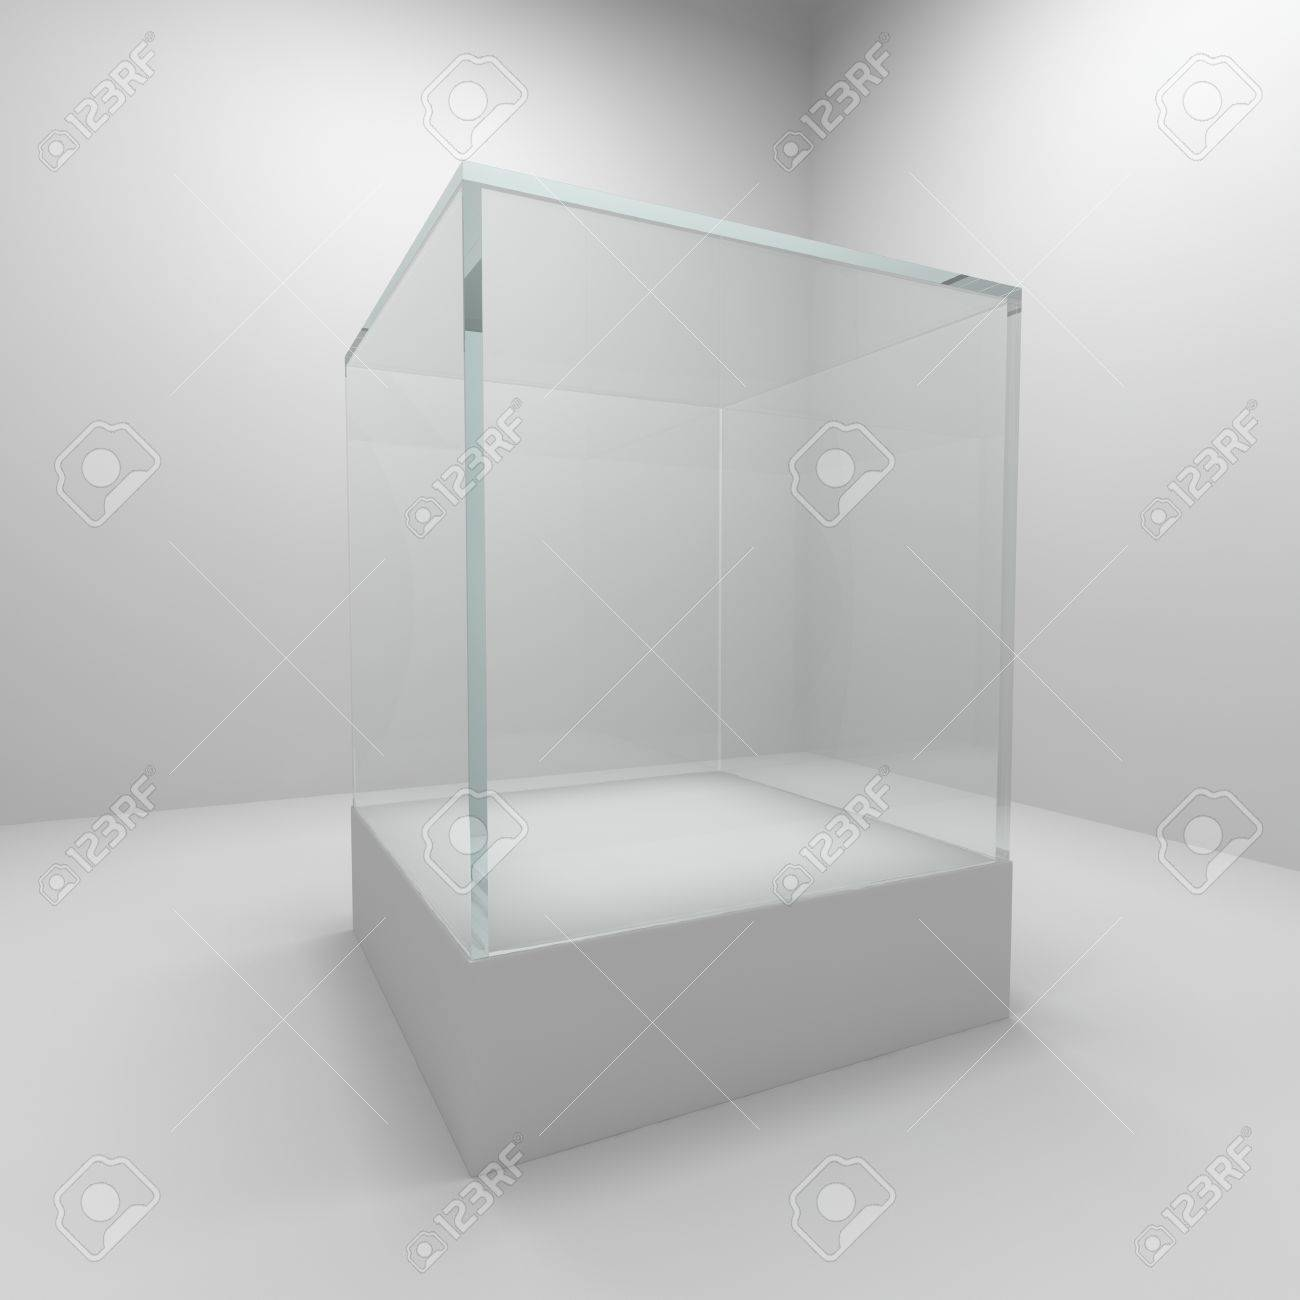 Empty glass showcase in room Stock Photo - 10148230